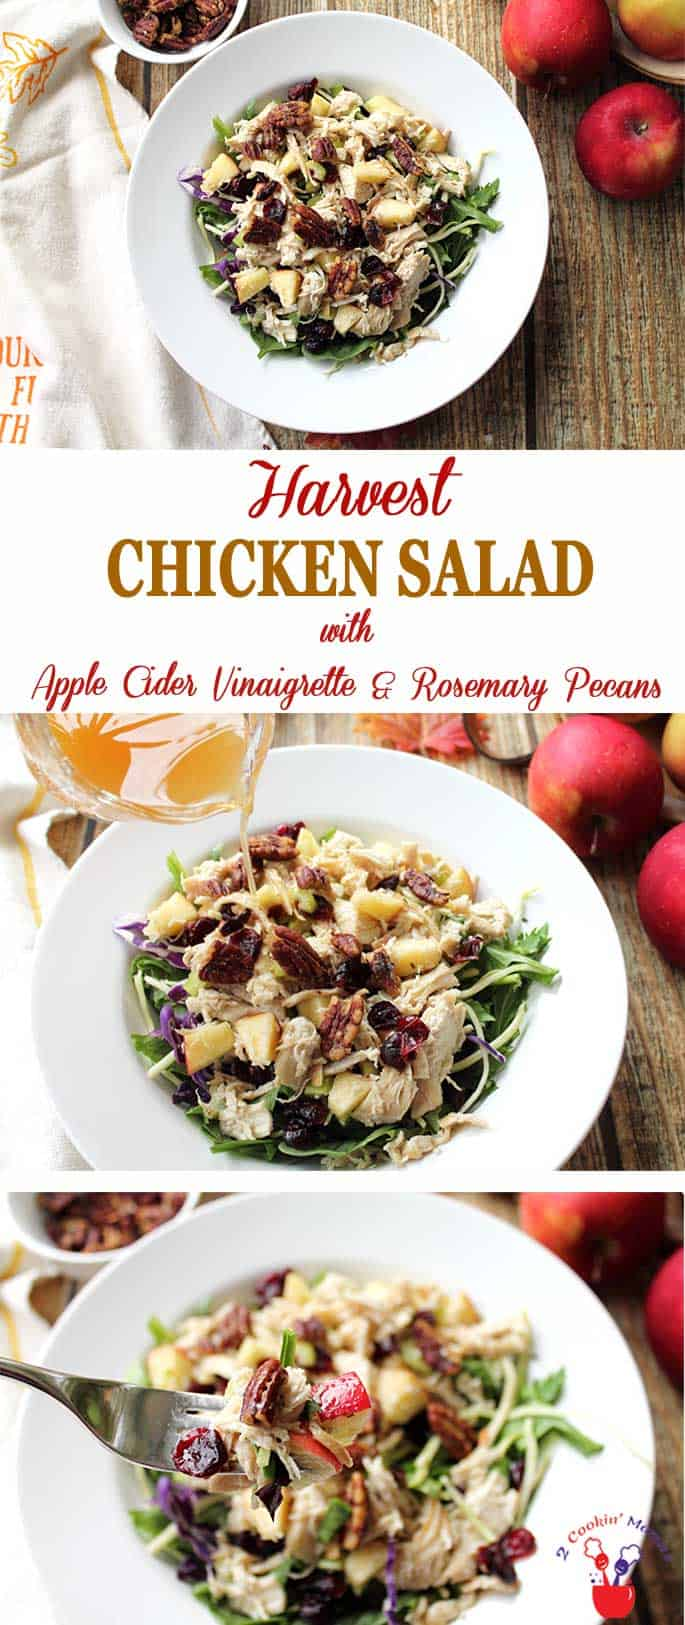 Harvest Chicken Salad | 2 Cookin Mamas Harvest Chicken Salad screams fall! Chicken cooked in apple cider, tossed with apples, cranberries & pecans then drizzled with apple cider vinaigrette. #fallsalad #salad #lunch #chicken #rosemarypecans